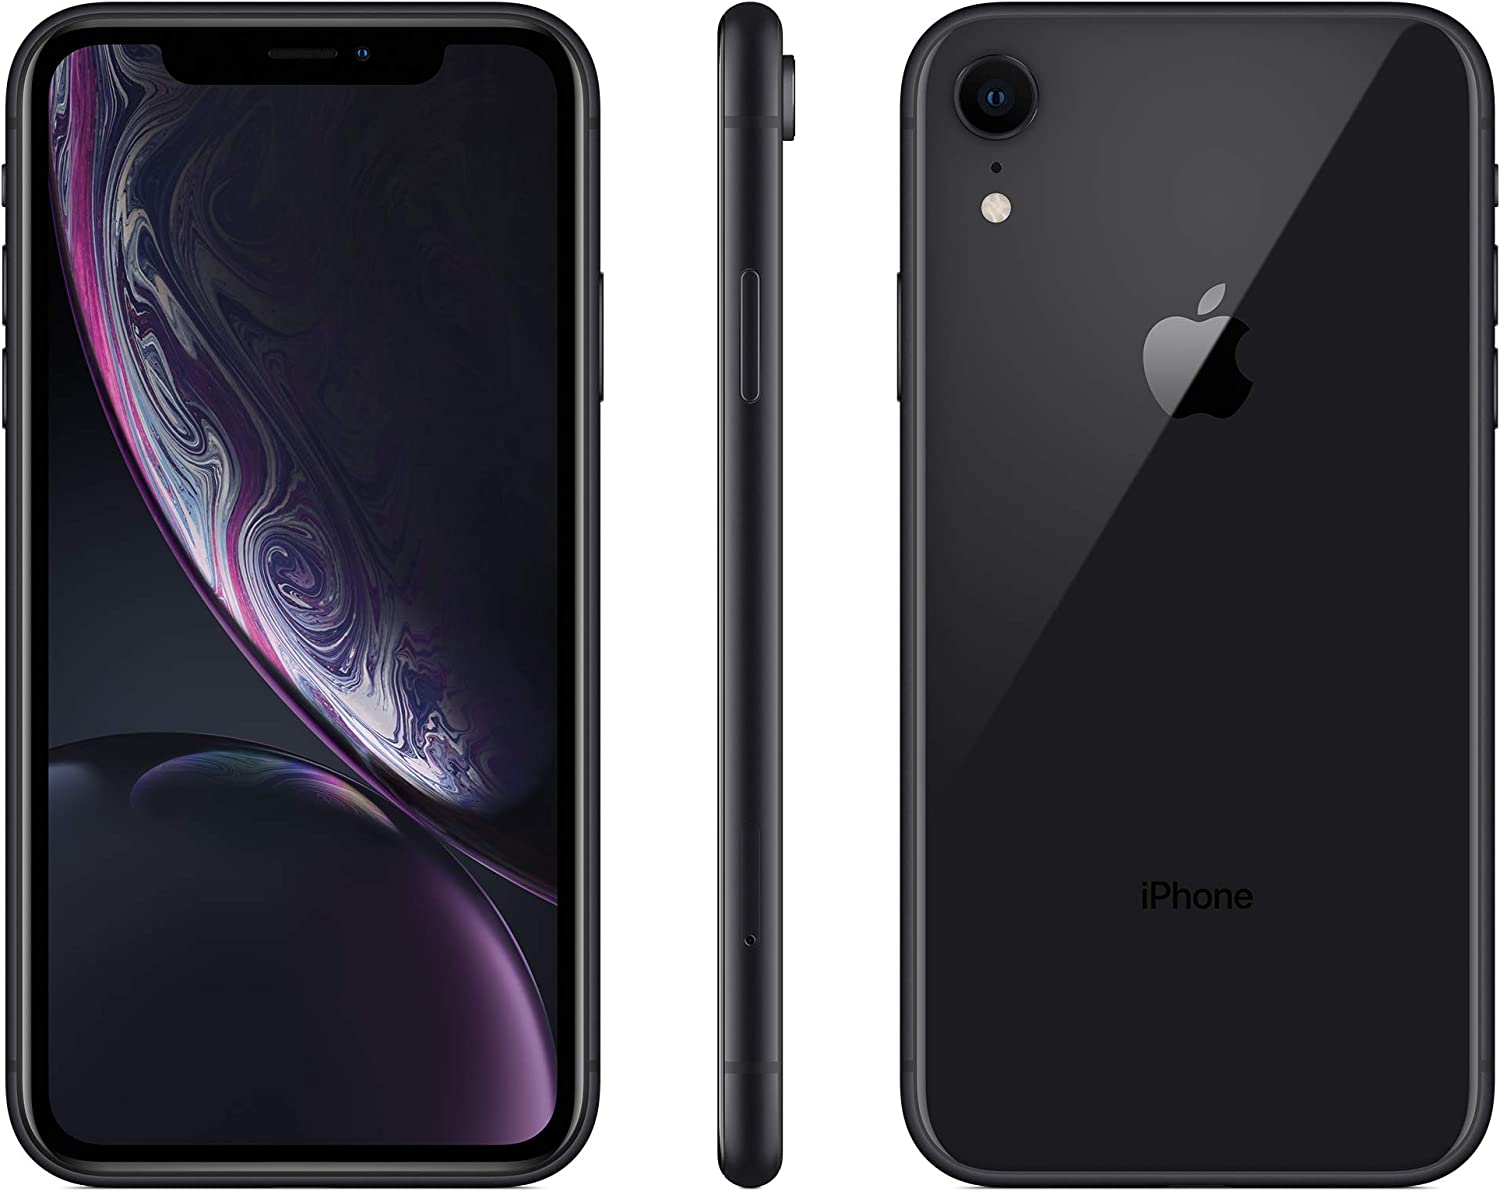 Apple iPhone XR, 64GB, Black -For AT&T / T-Mobile (Renewed)